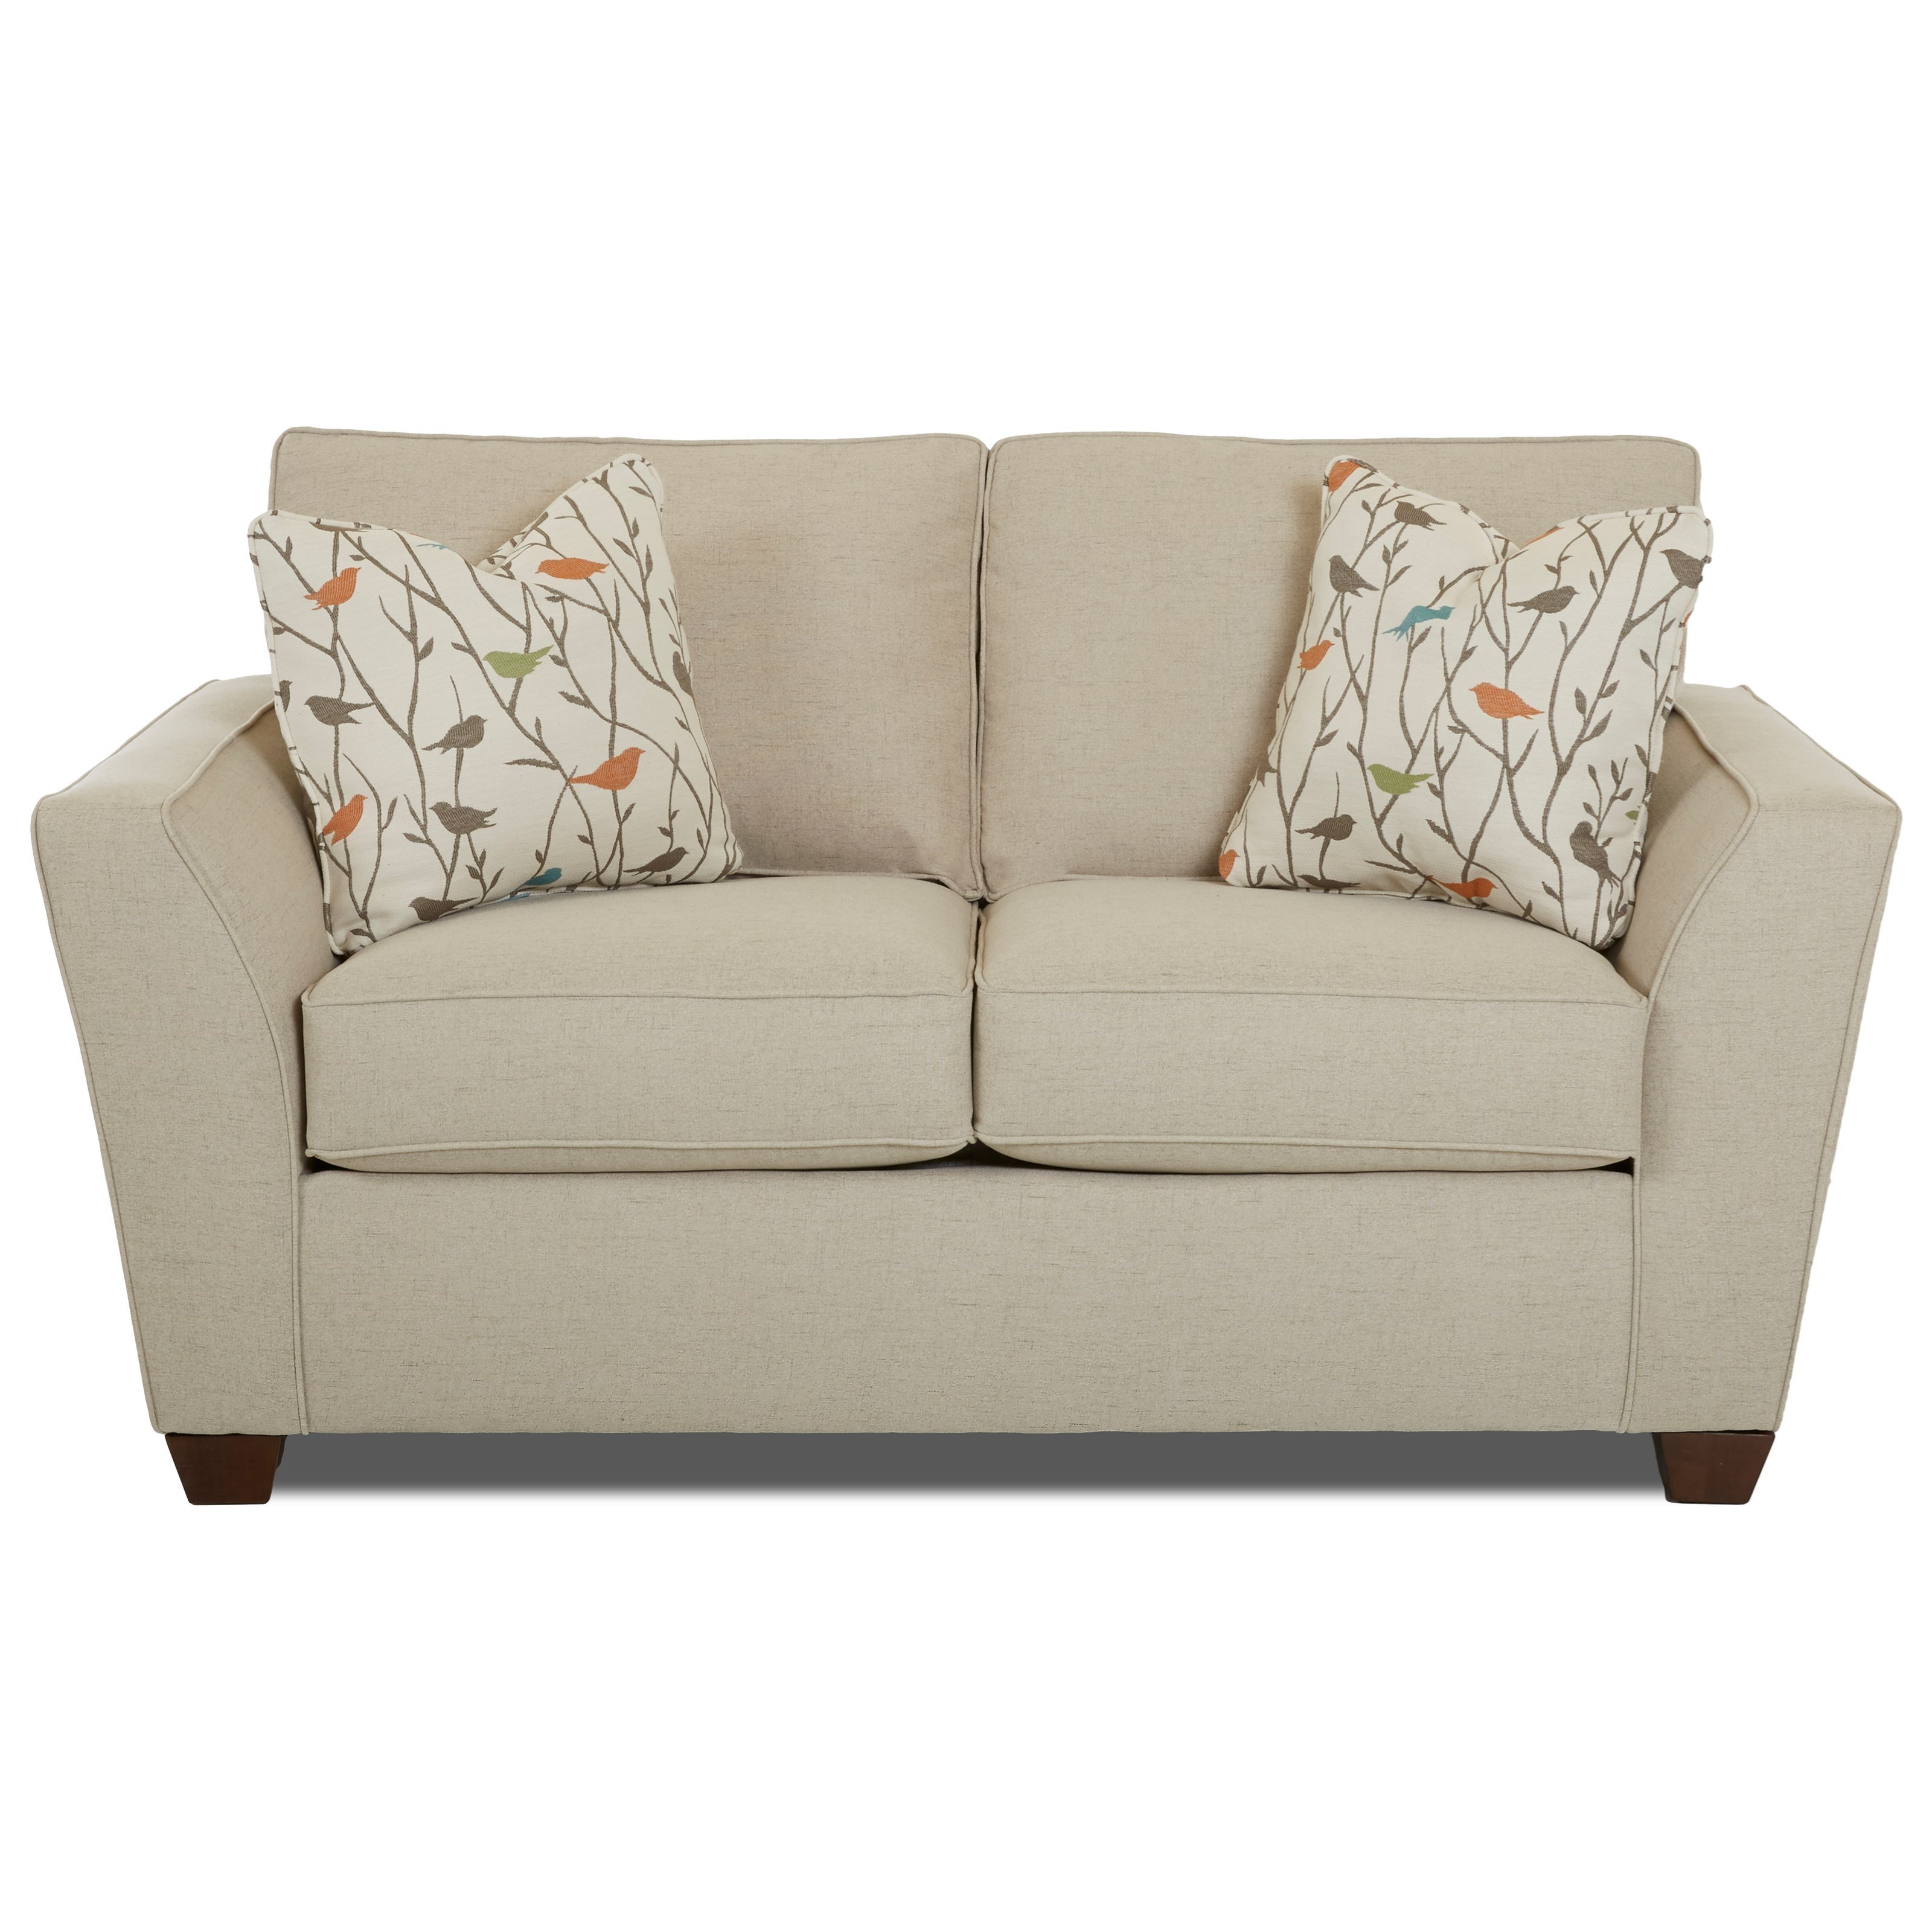 Klaussner Kent Loveseat - Item Number: K75600 LS-LUCAS HEMP